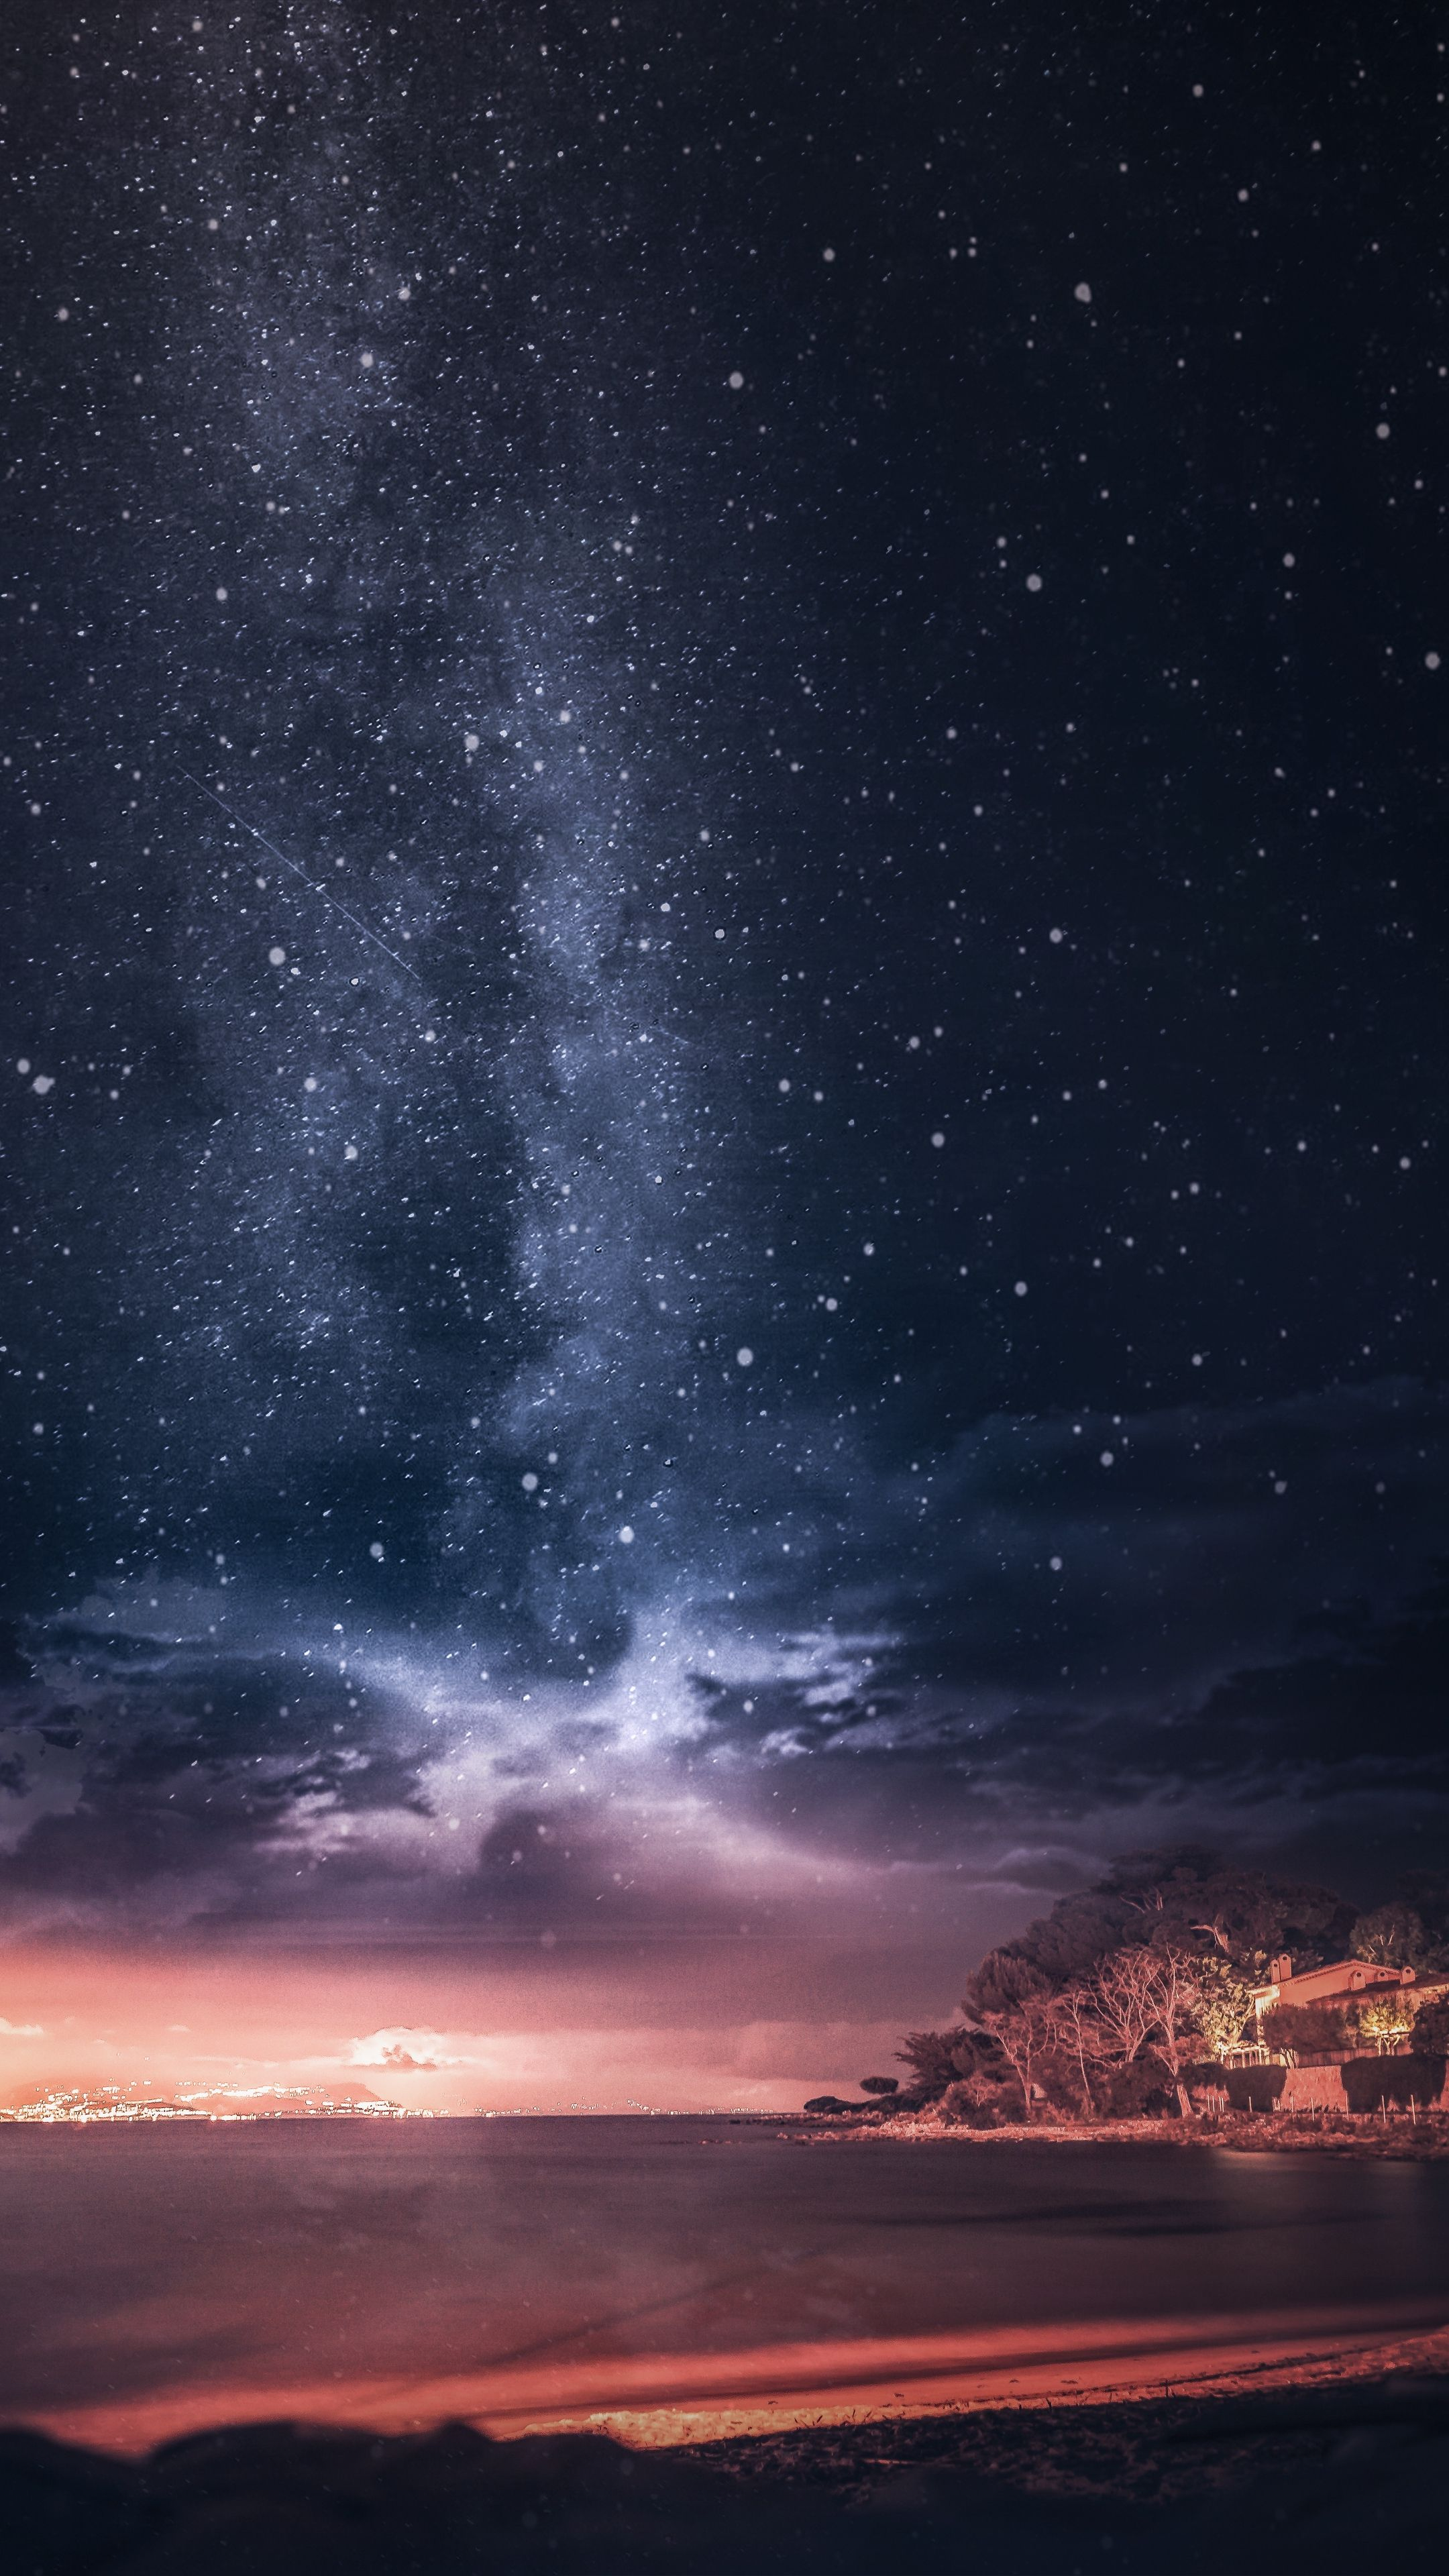 Sky Sea Sunset Starrysky Wallpapers Hd 4k Background For Android 4k Background Night Sky Photography Sunset Wallpaper